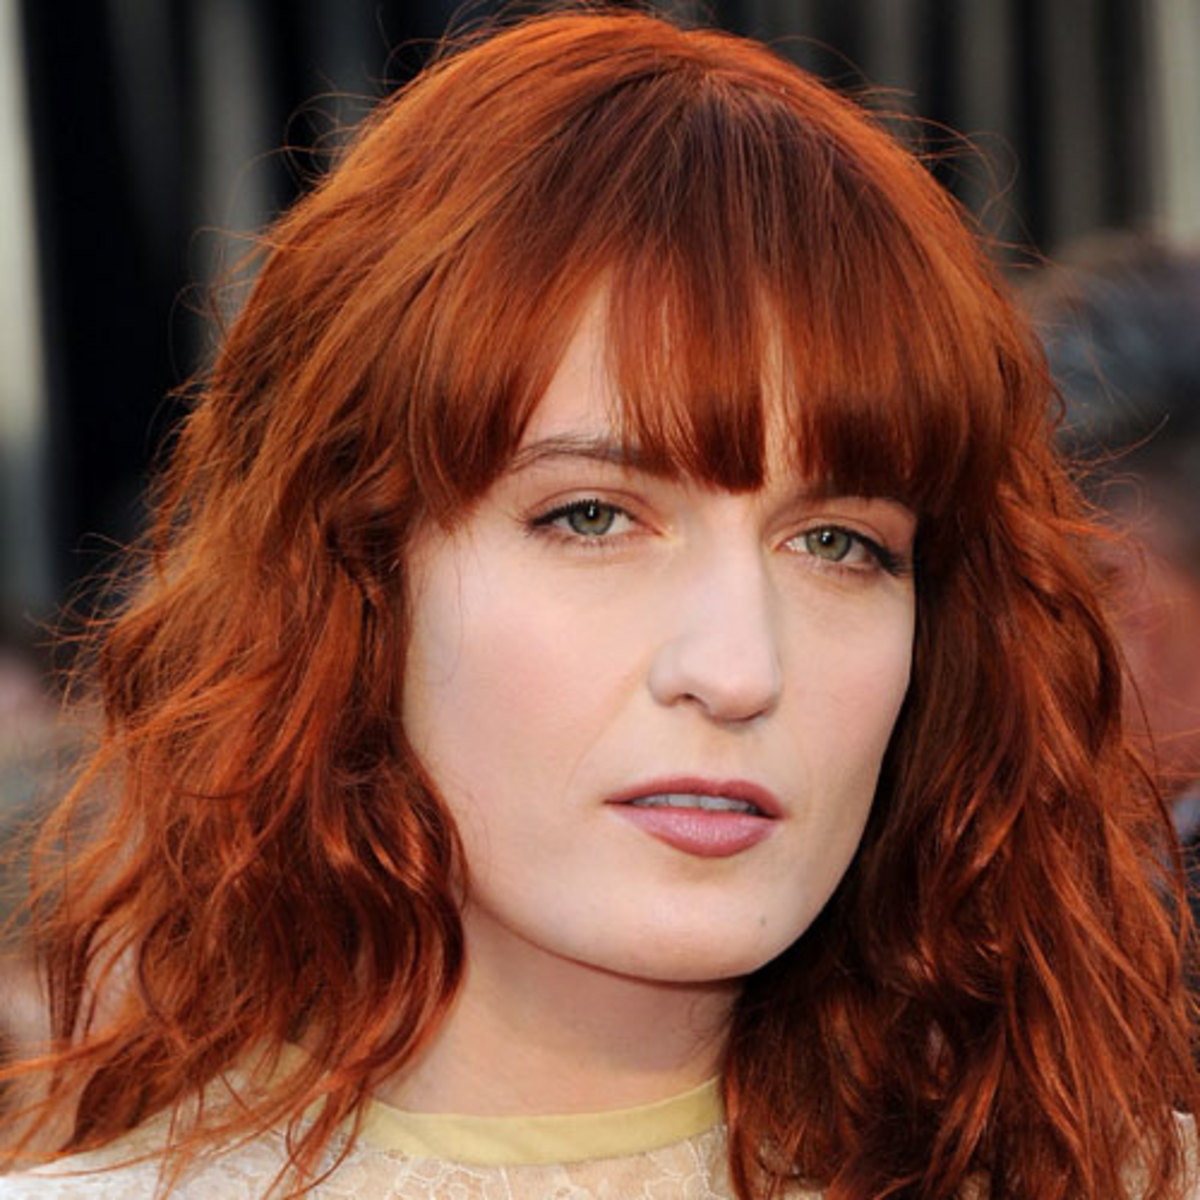 Florence Welch's makeup with red hair and green eyes